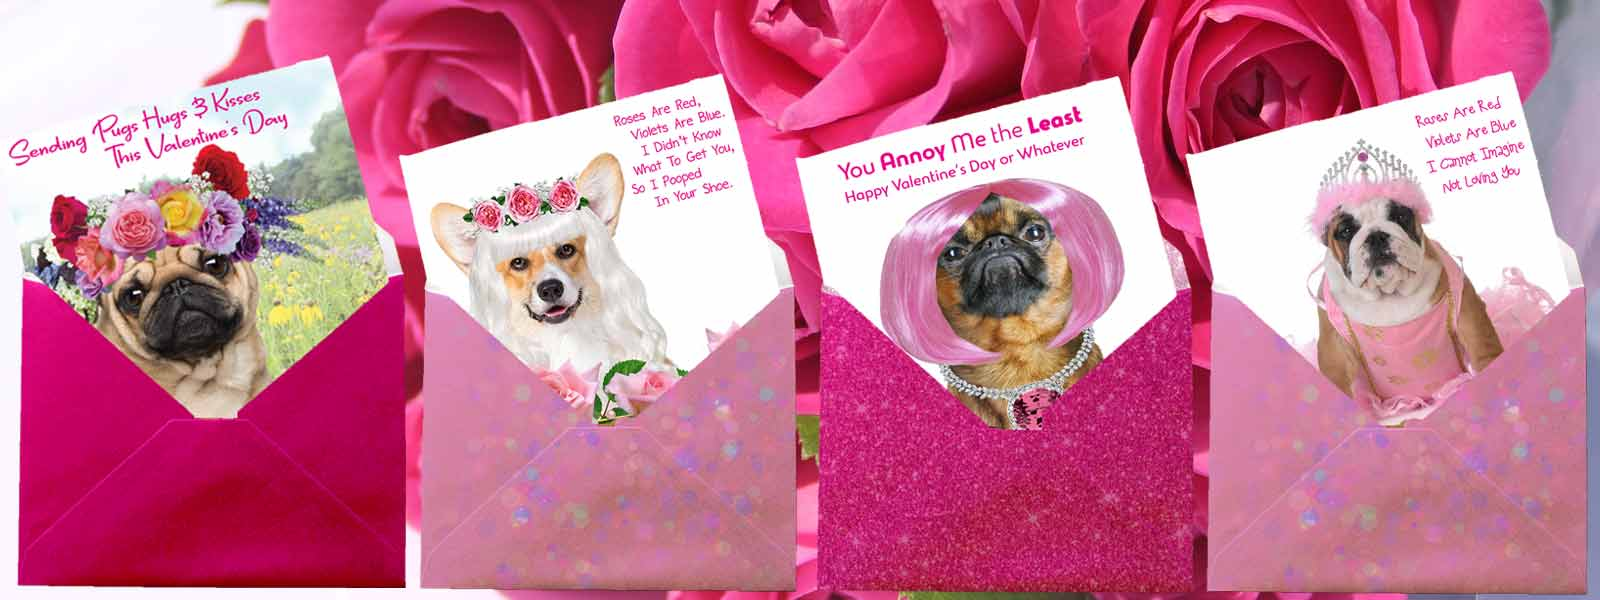 dog valentine's day cards